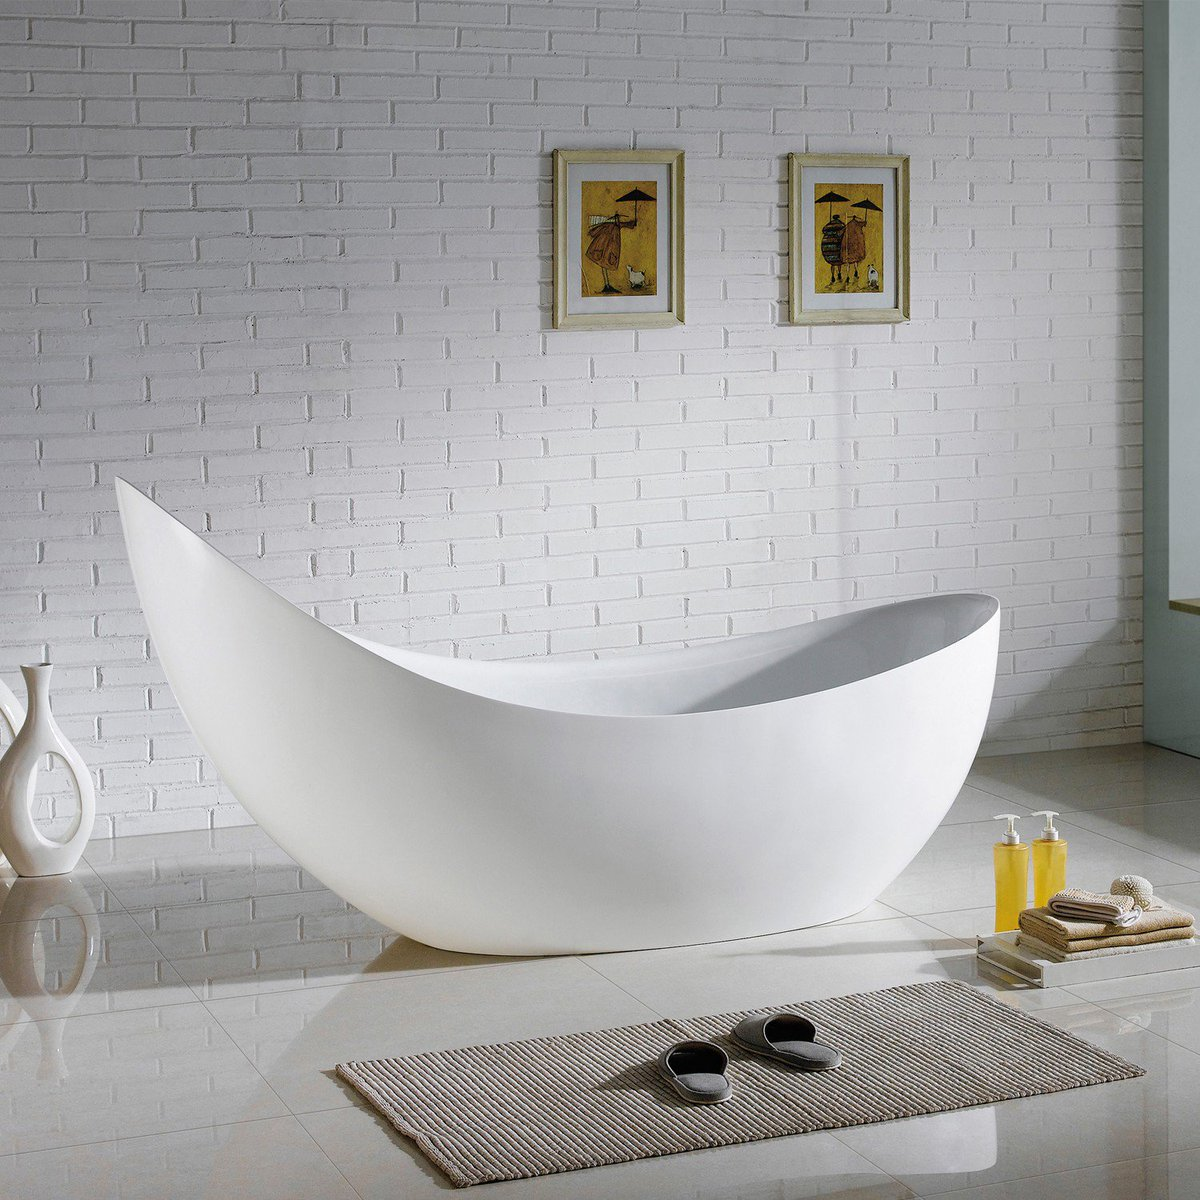 Delighted Tub Paint Thick How To Paint A Bathtub Shaped Bath Tub Paint Paint A Bathtub Young Bathtub Repair Contractor Coloured Painting A Tub